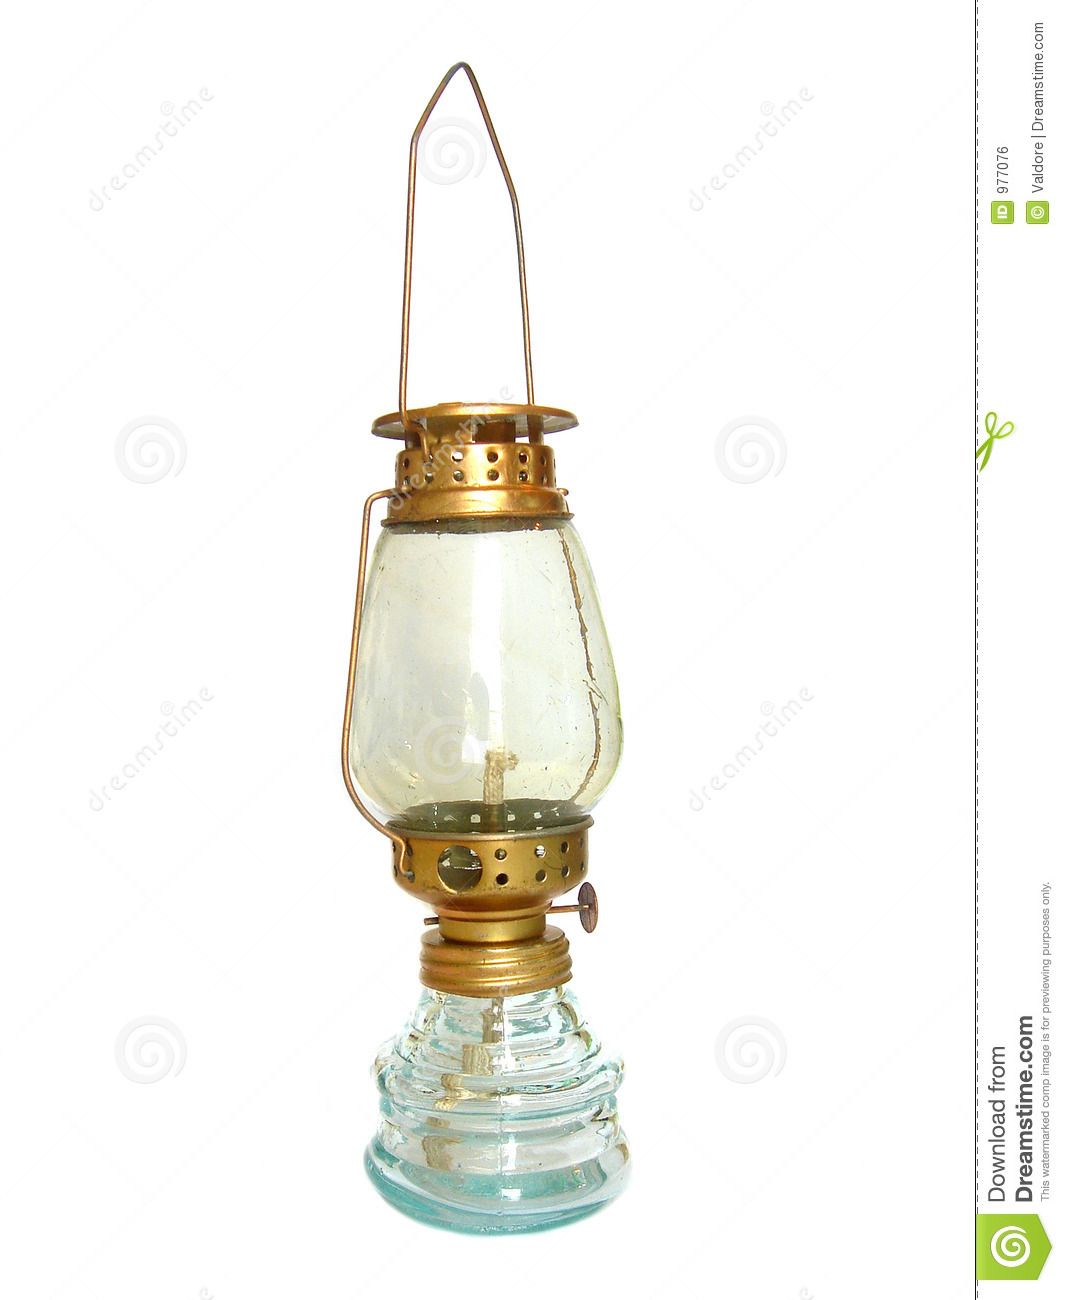 download antique lamp on white backgound stock photo image of light gold 977076 - Antique Lamp